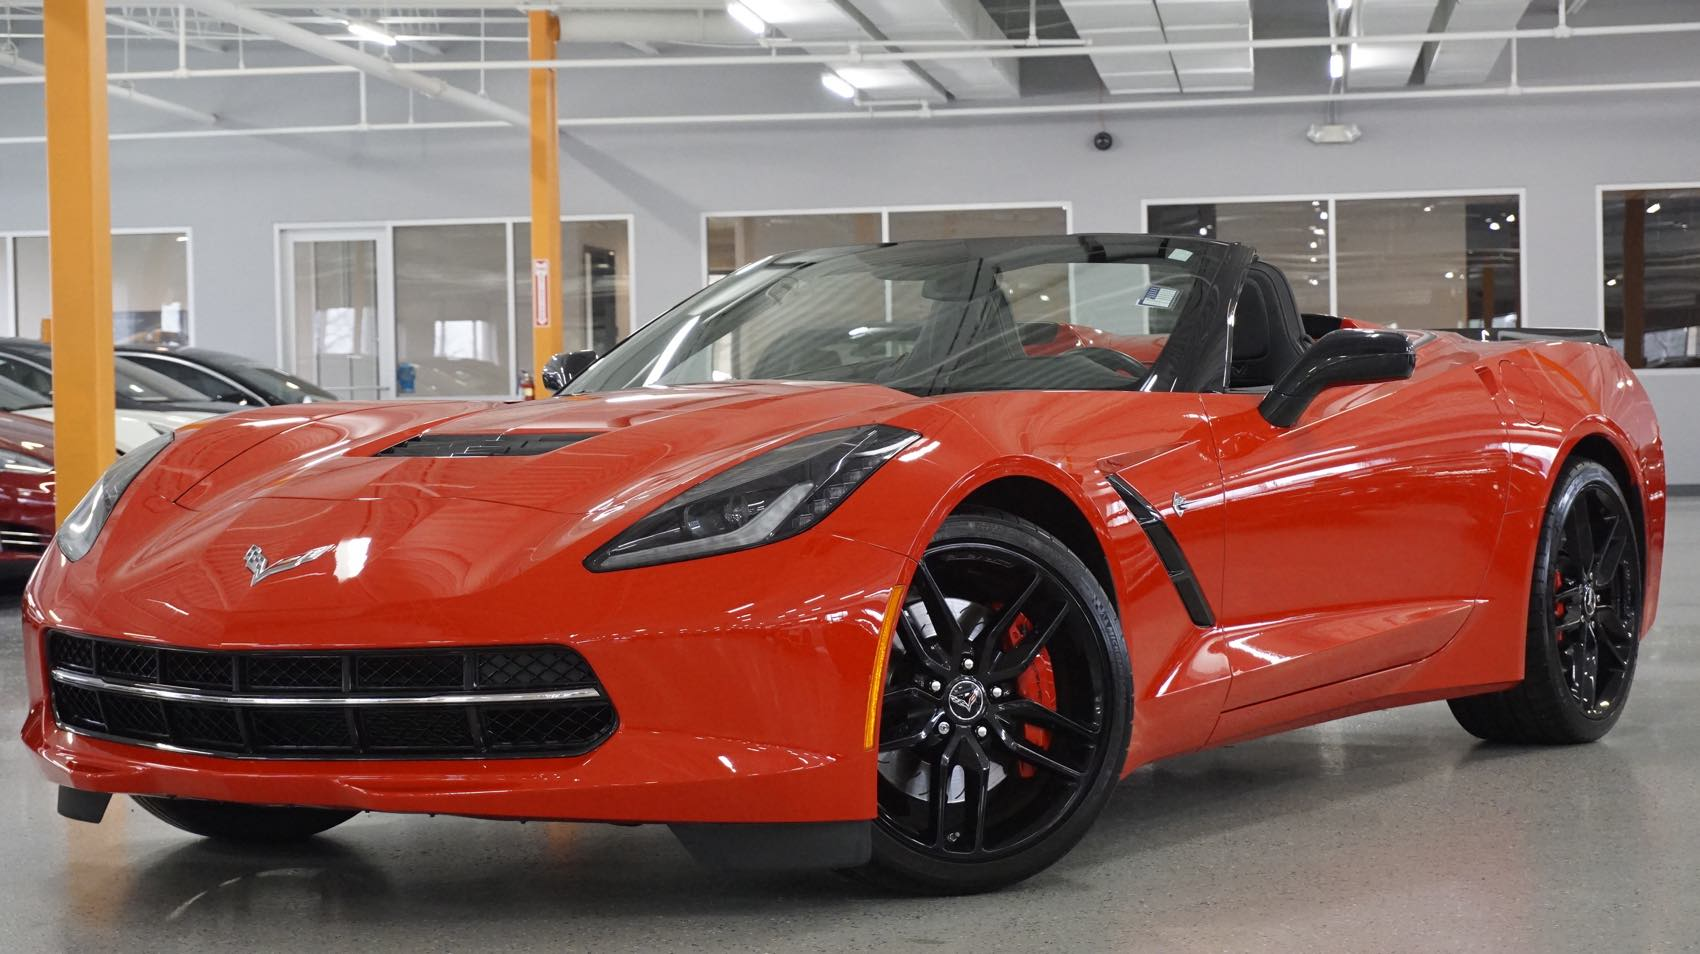 2014 Chevrolet Corvette Stingray Z51 >> Pre-Owned 2014 Chevrolet Corvette Stingray Z51 2D